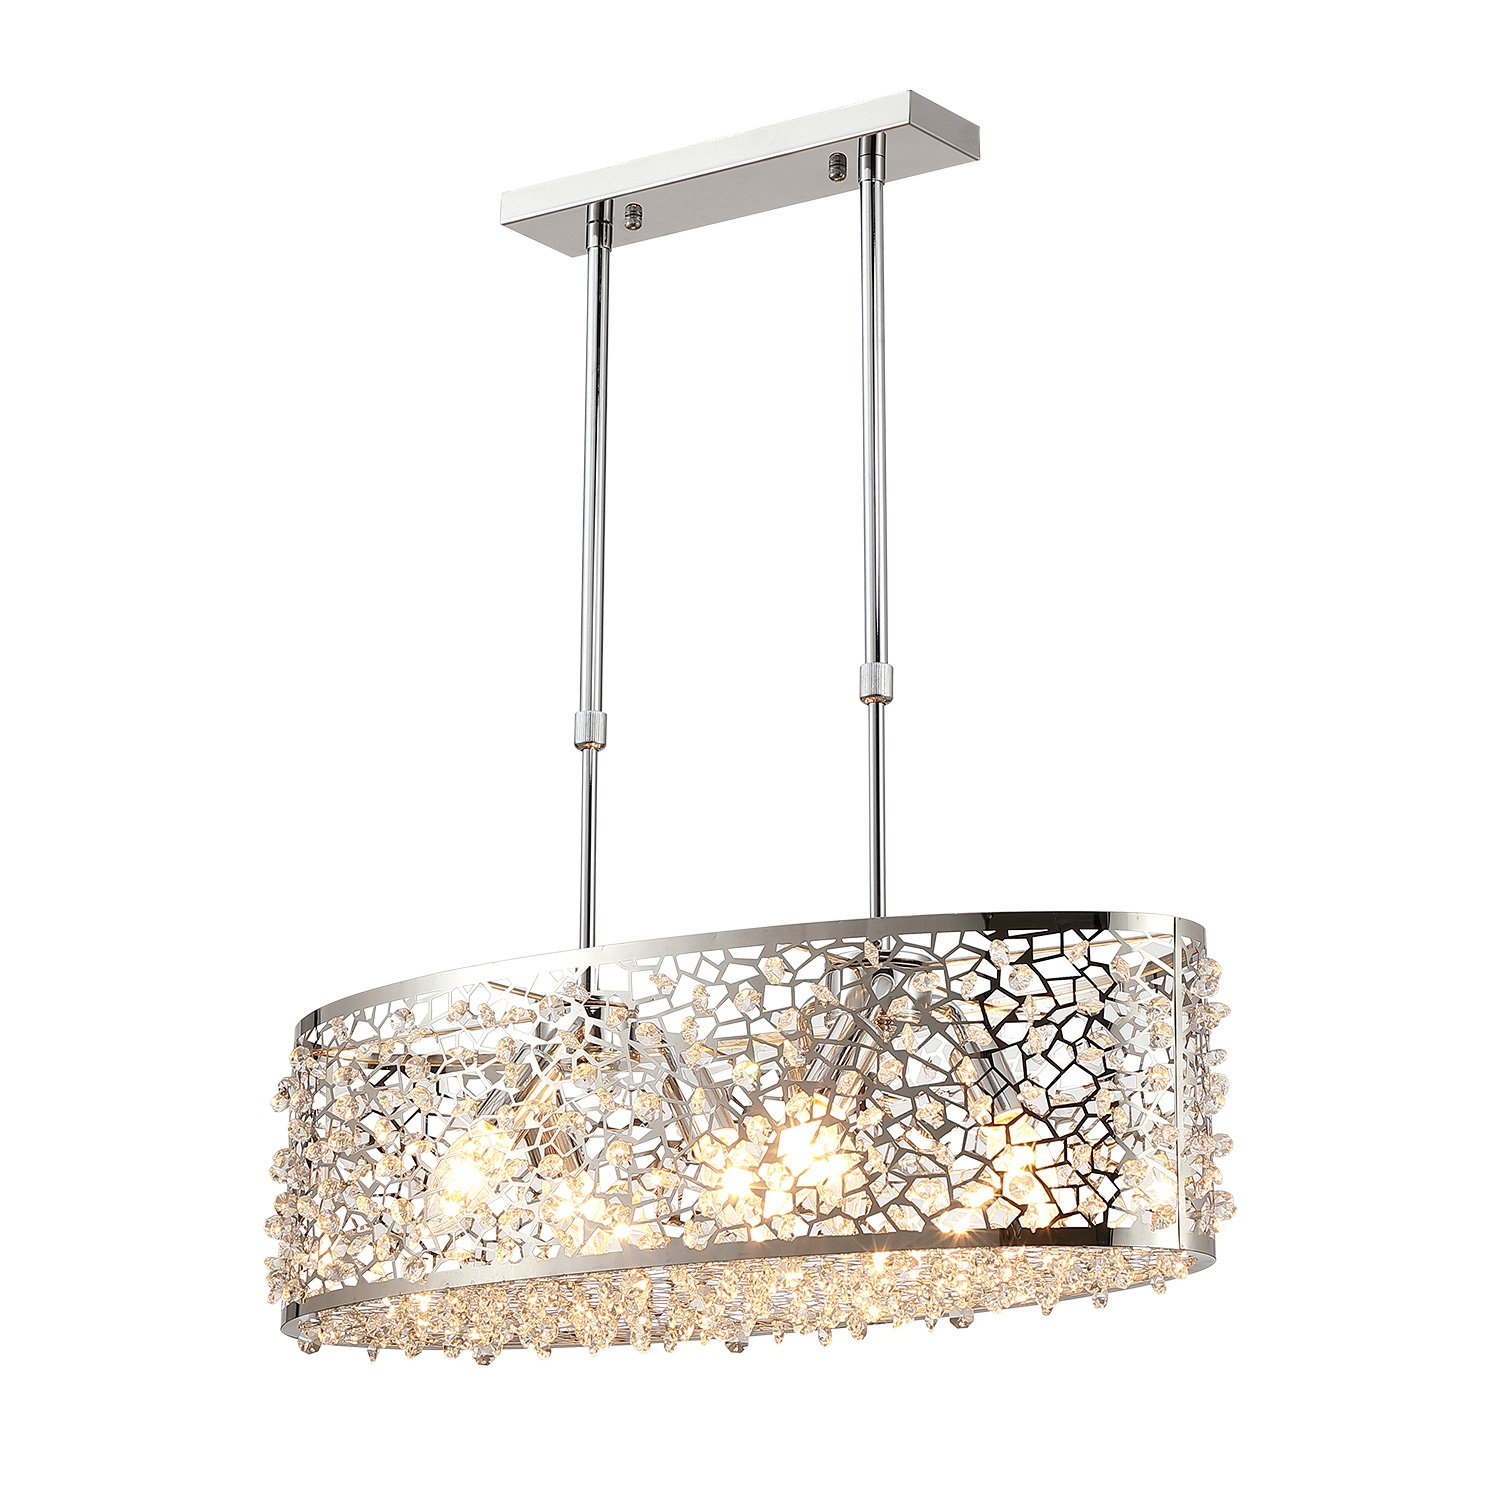 Saint Mossi Modern K9 Crystal Oval Chandelier Lighting Flush Mount LED Ceiling Light Fixture Pendant Lamp for Dining Room Bathroom Bedroom Livingroom 6 E12 Bulbs Required H10in x W7in x L24in